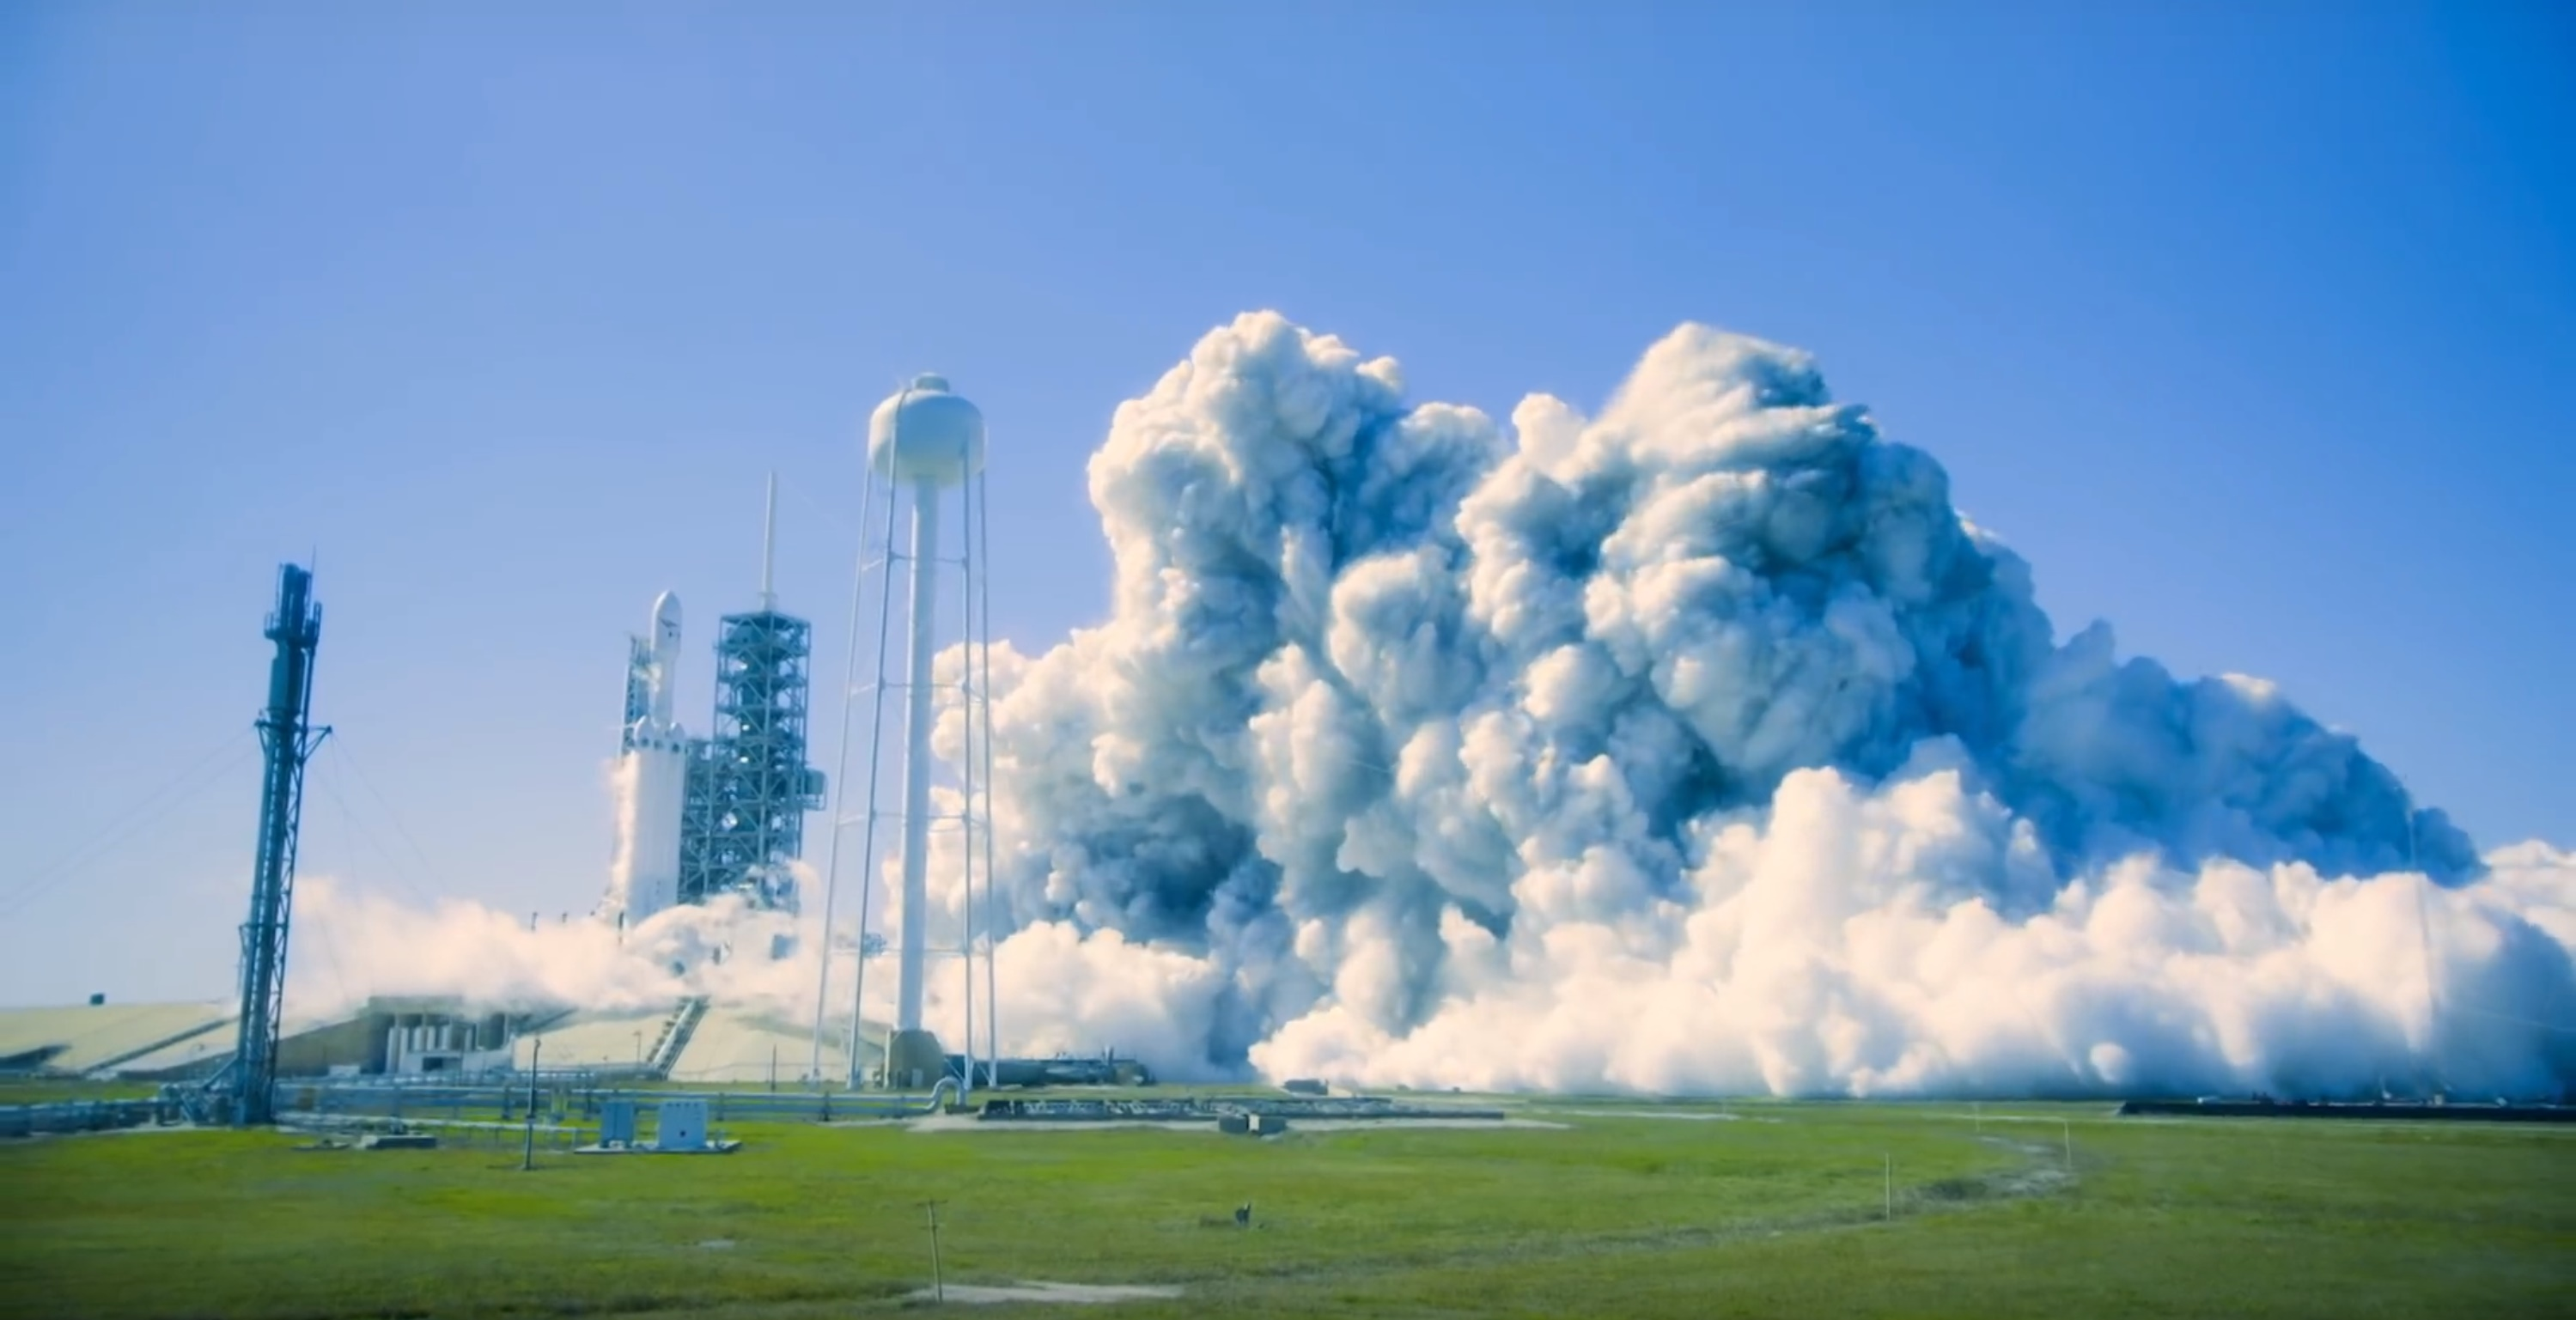 FH static fire 2 (SpaceX)